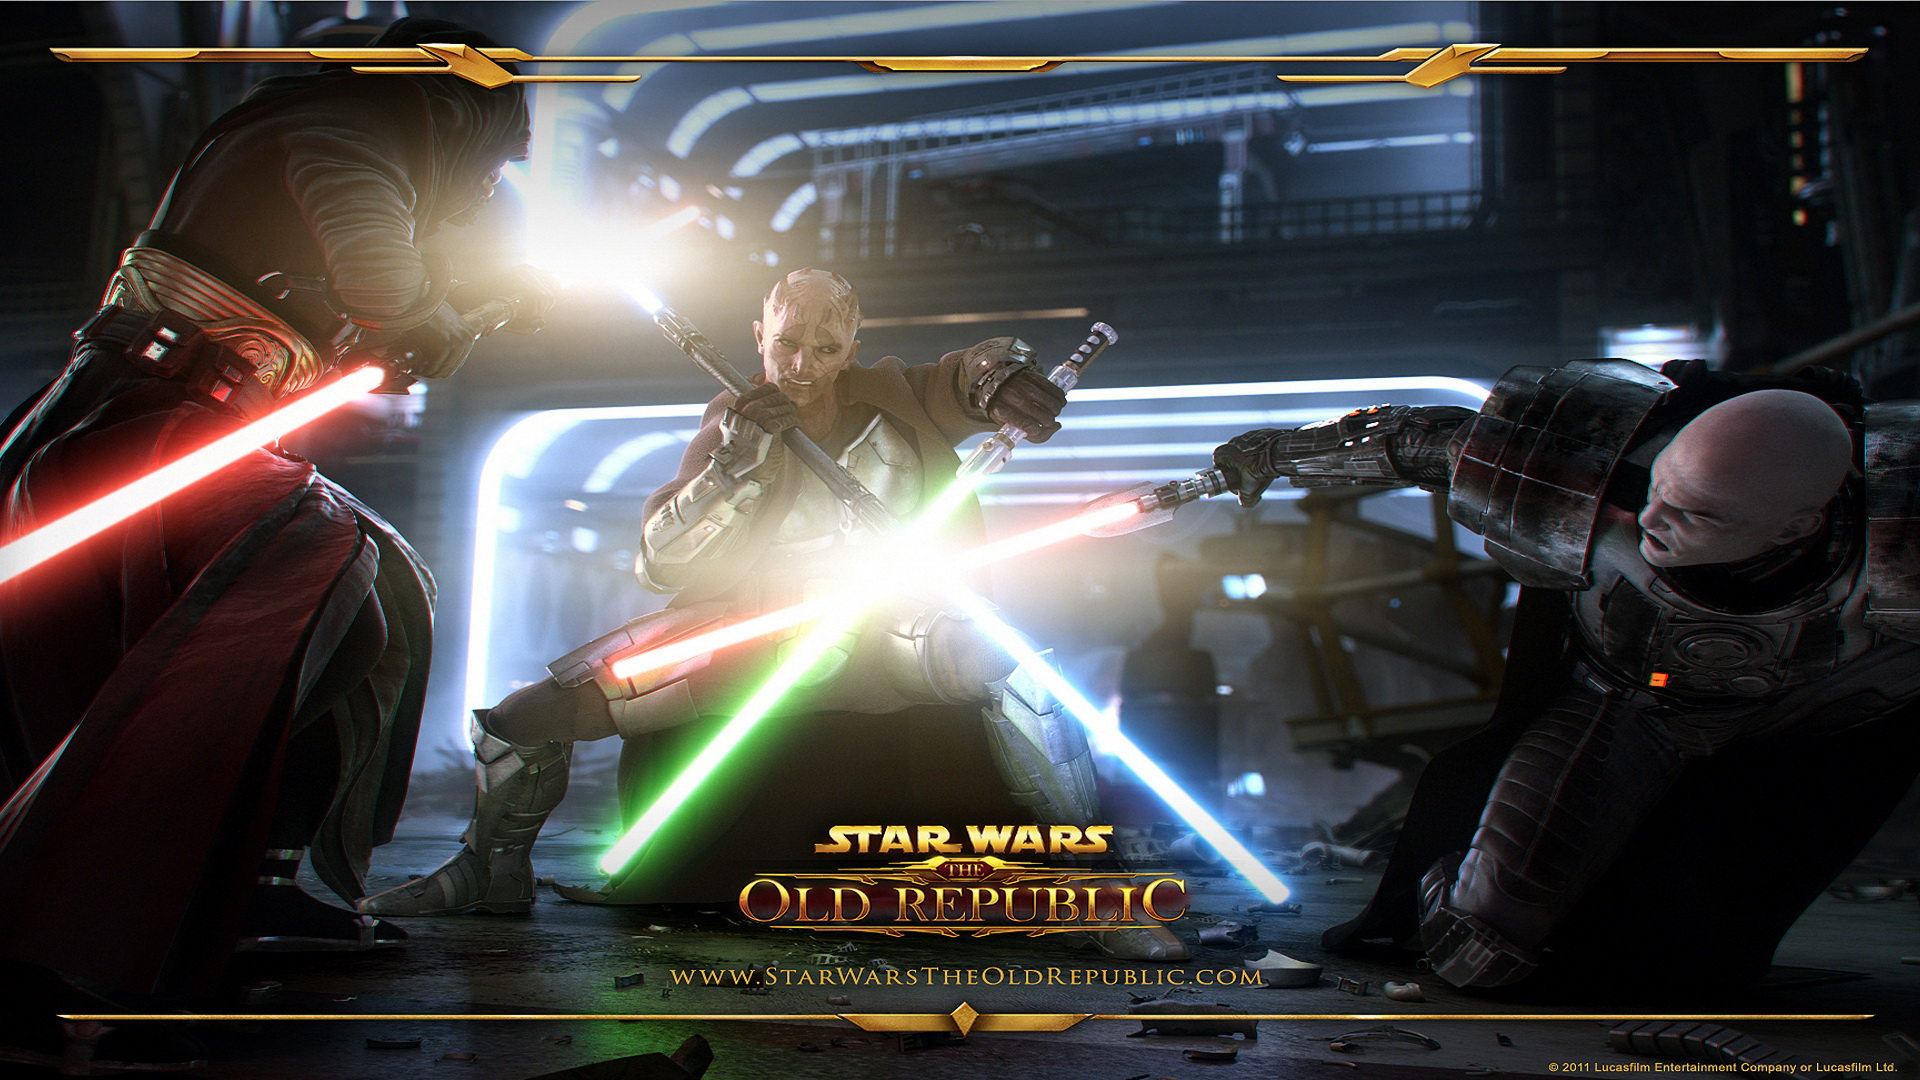 star wars the old republic return Wallpaper Game HD Wallpapers Video 1920x1080